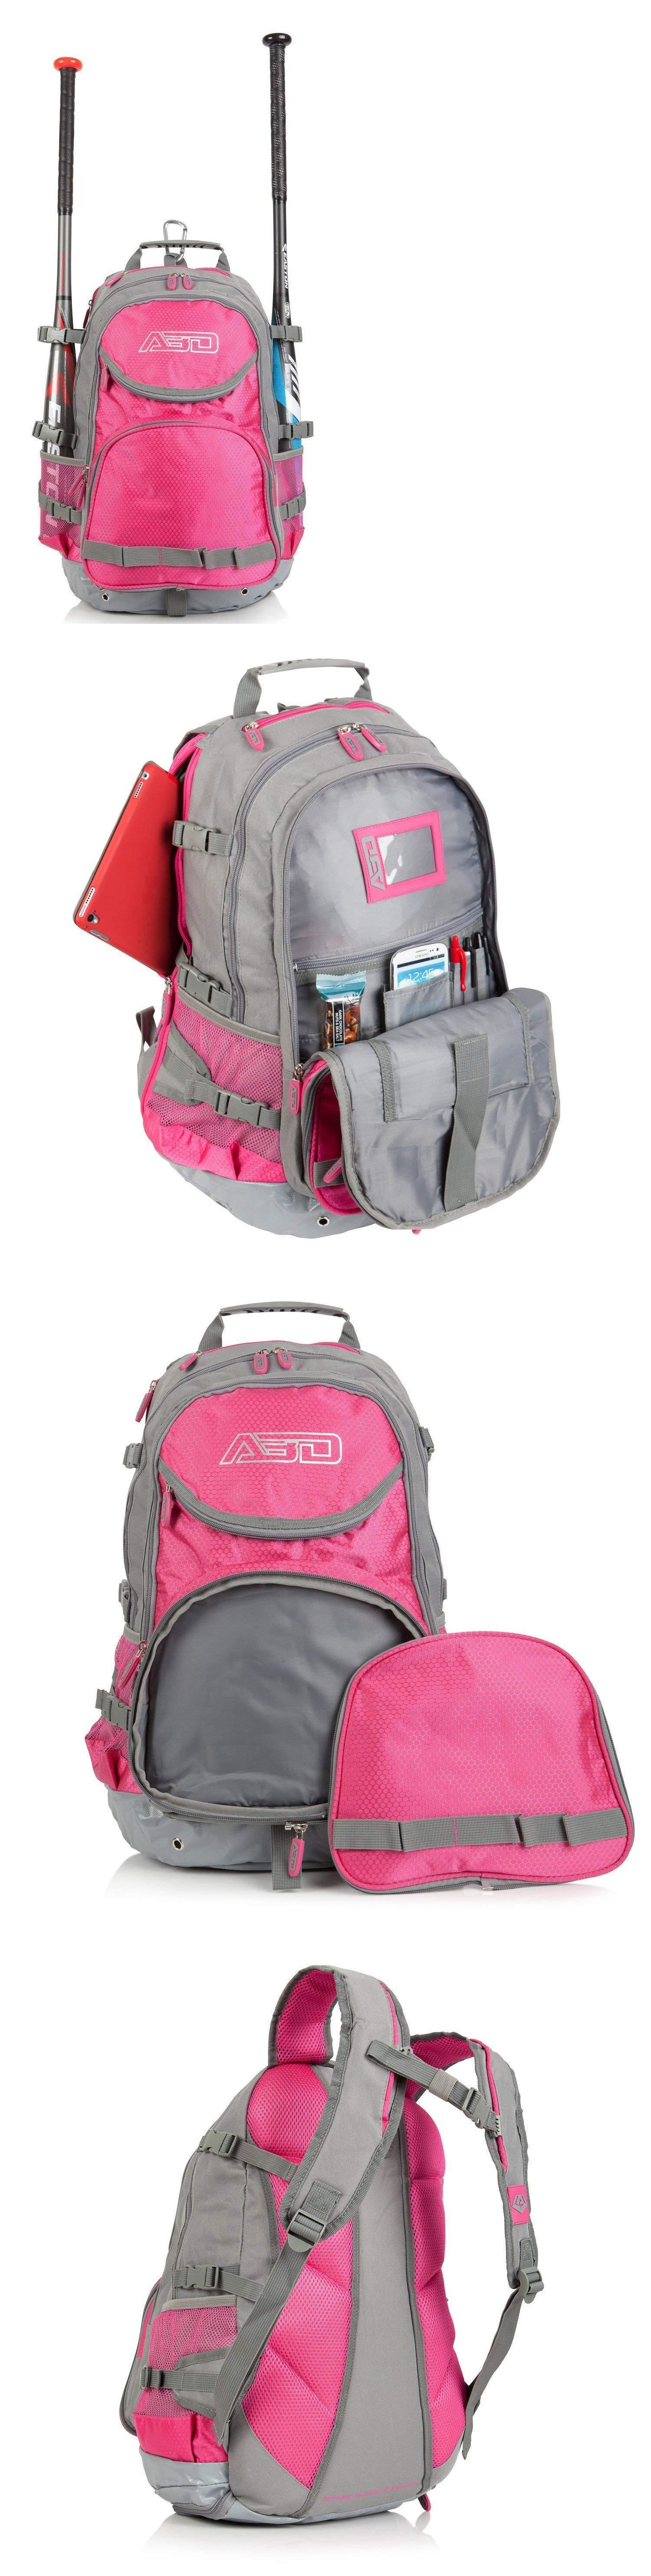 Equipment Bags 50807 Softball Bag Junior S Youth Bat Backpack For T Ballandsoftball Pink Gray It Now Only 25 99 On Ebay